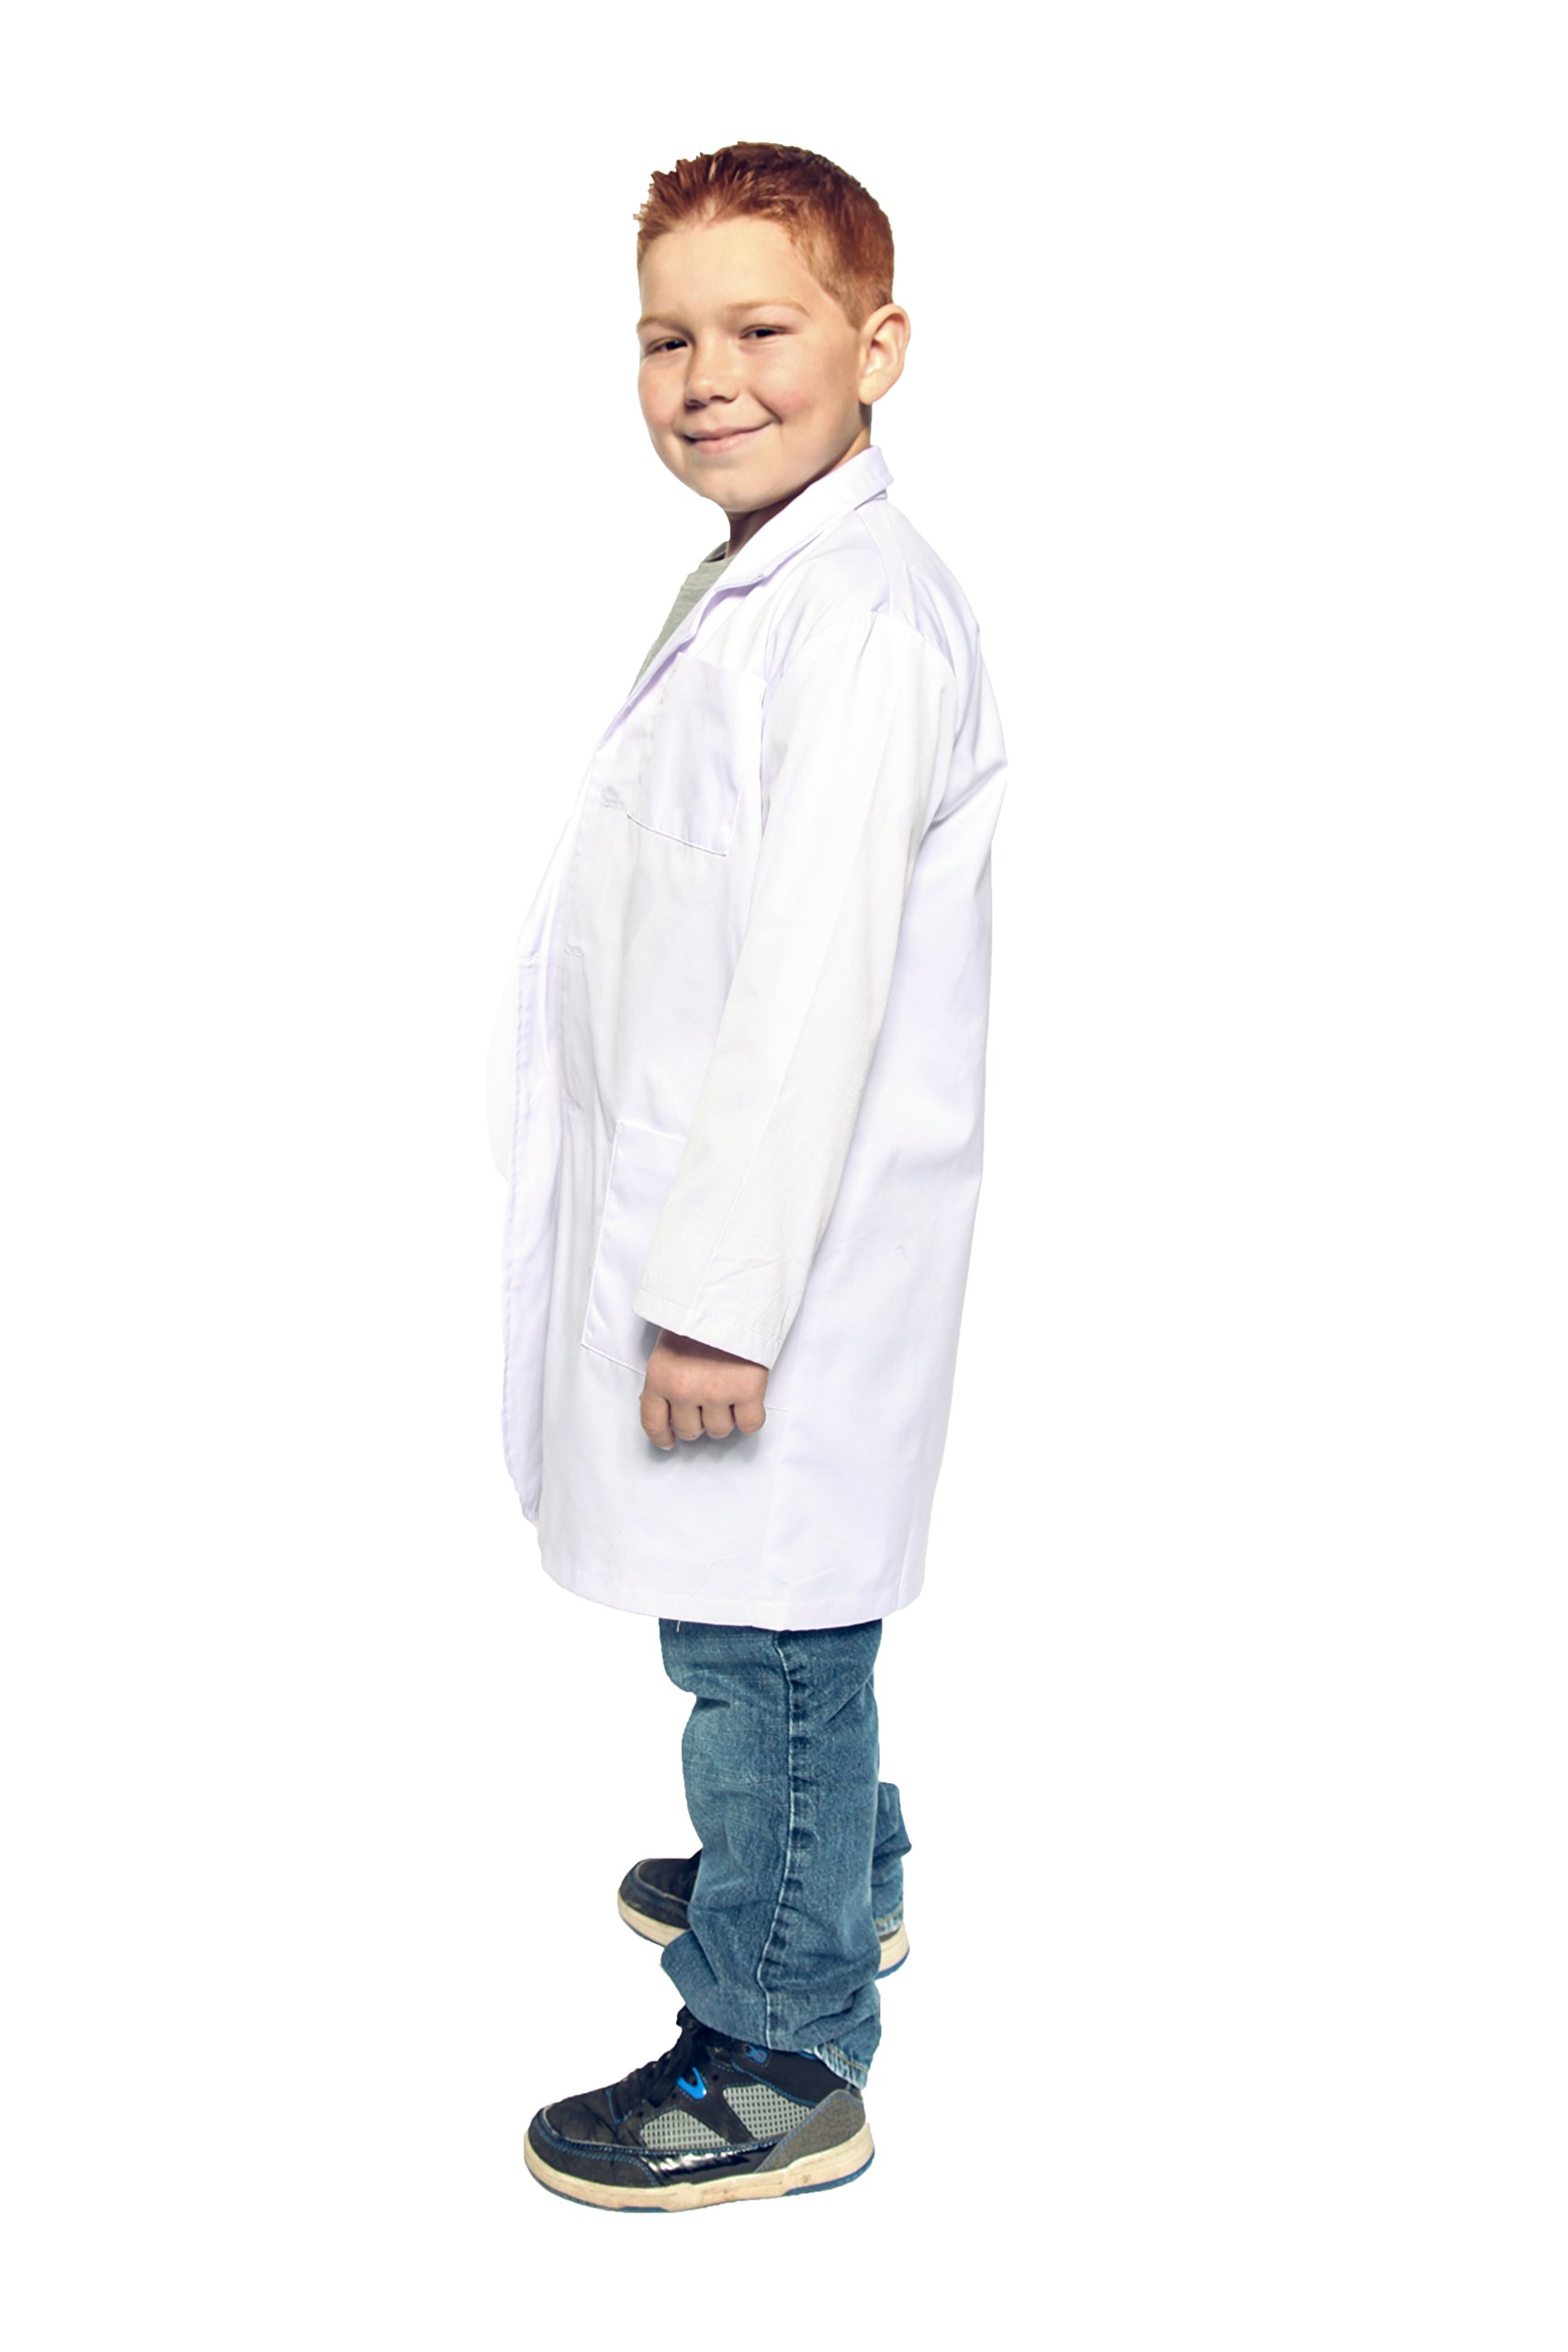 Working Class Children's Lab Coat,White (Ages 8-10) by Working Class